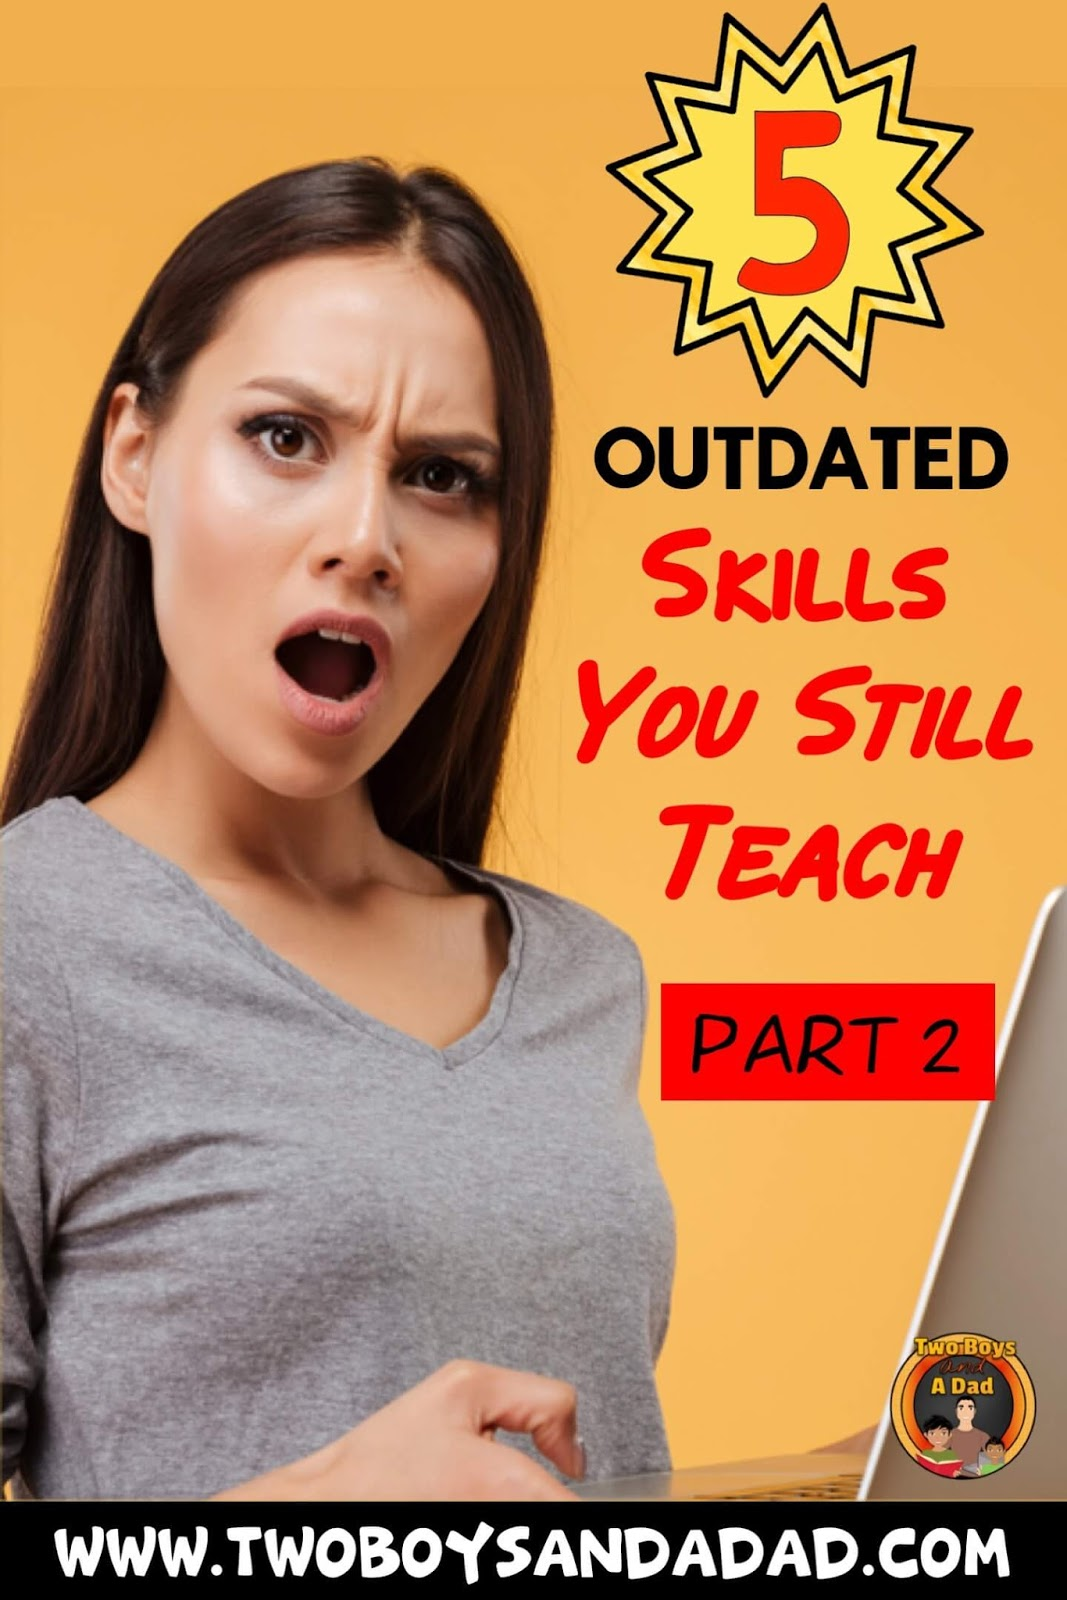 Are we teaching our students outdated skills?